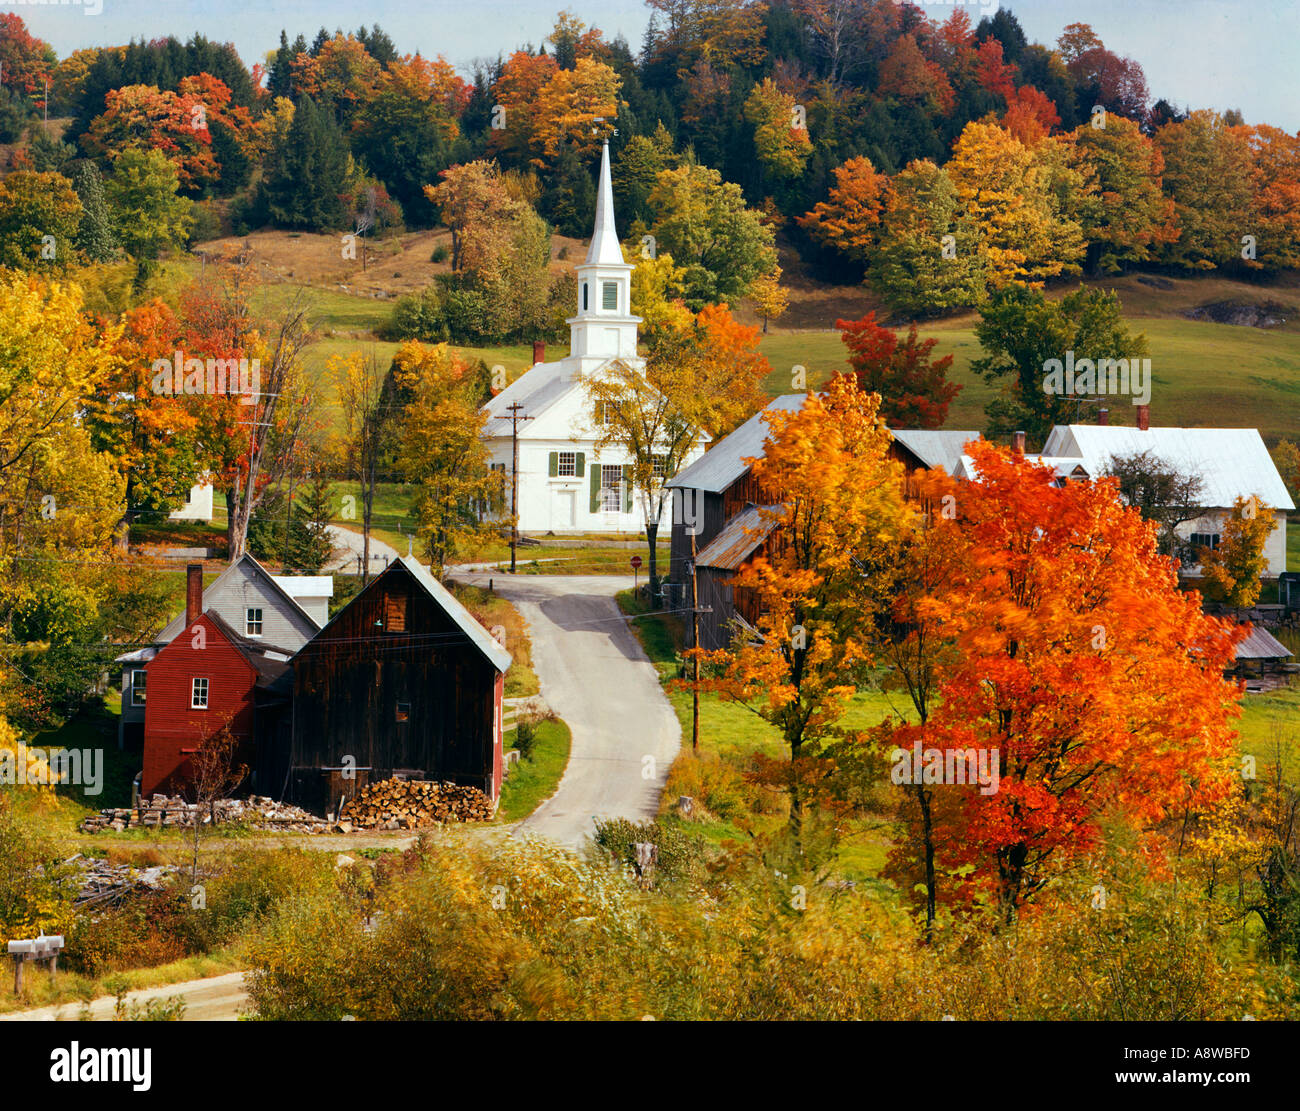 Best Small Towns To Live In Village Of Waits River Vermont Usa During Fall Foliage